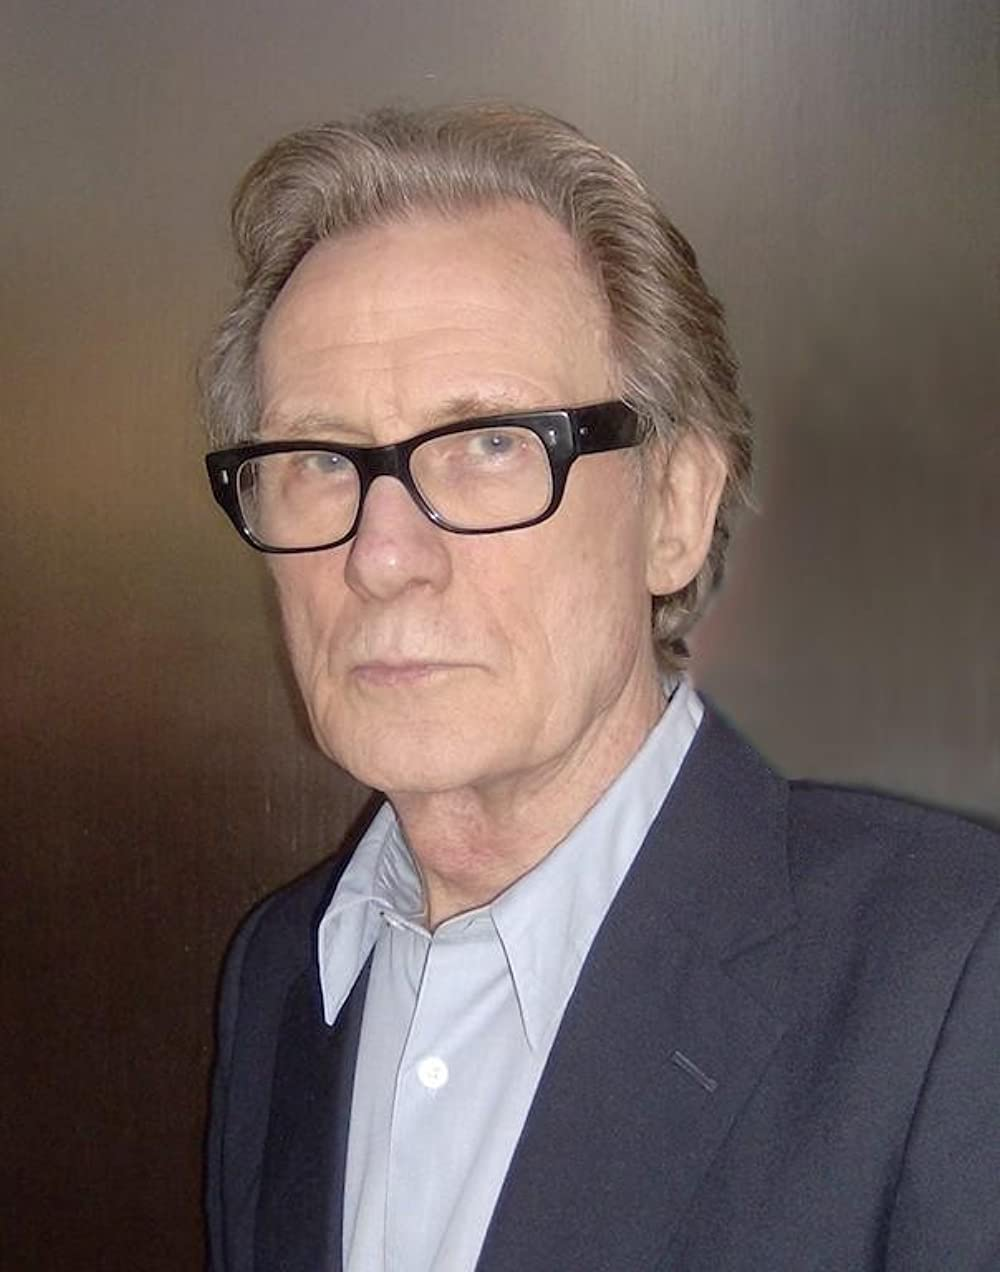 File:Bill Nighy 1.jpeg